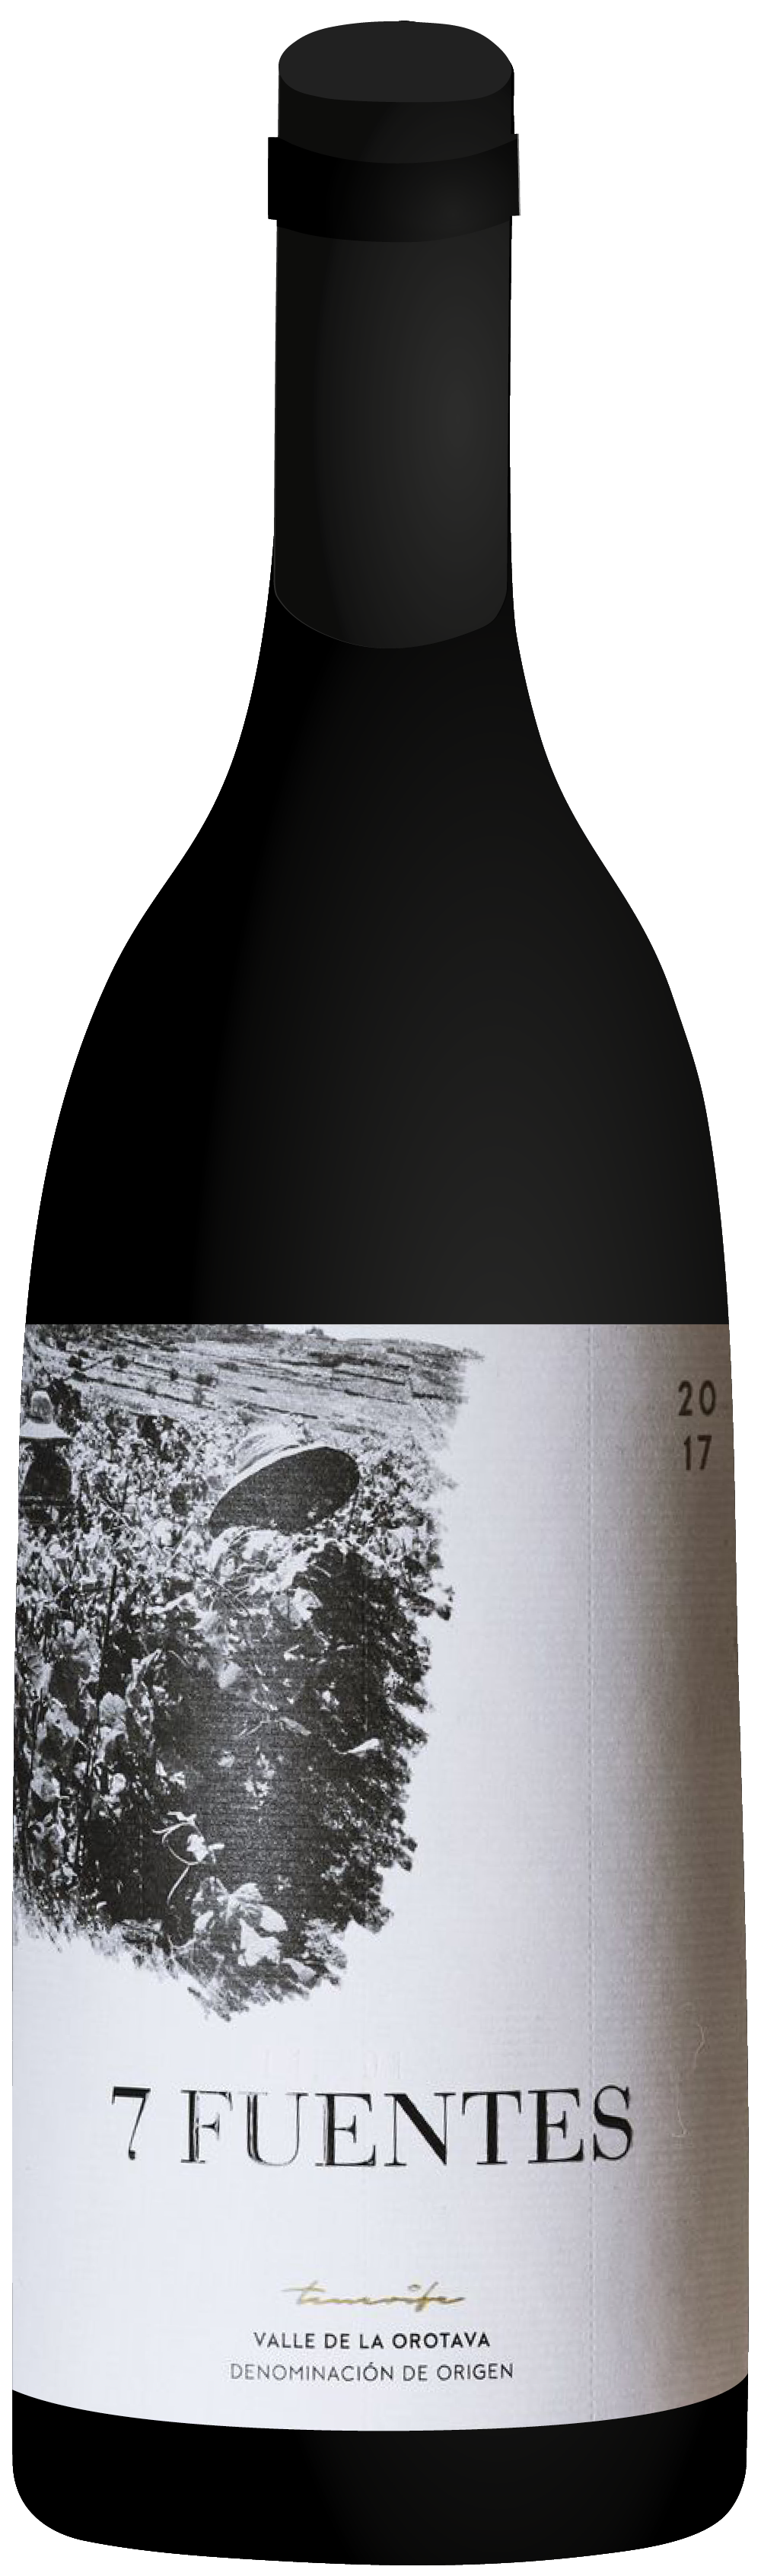 the natural wine company club june 2020 spain suertes del marques 7 fuentes